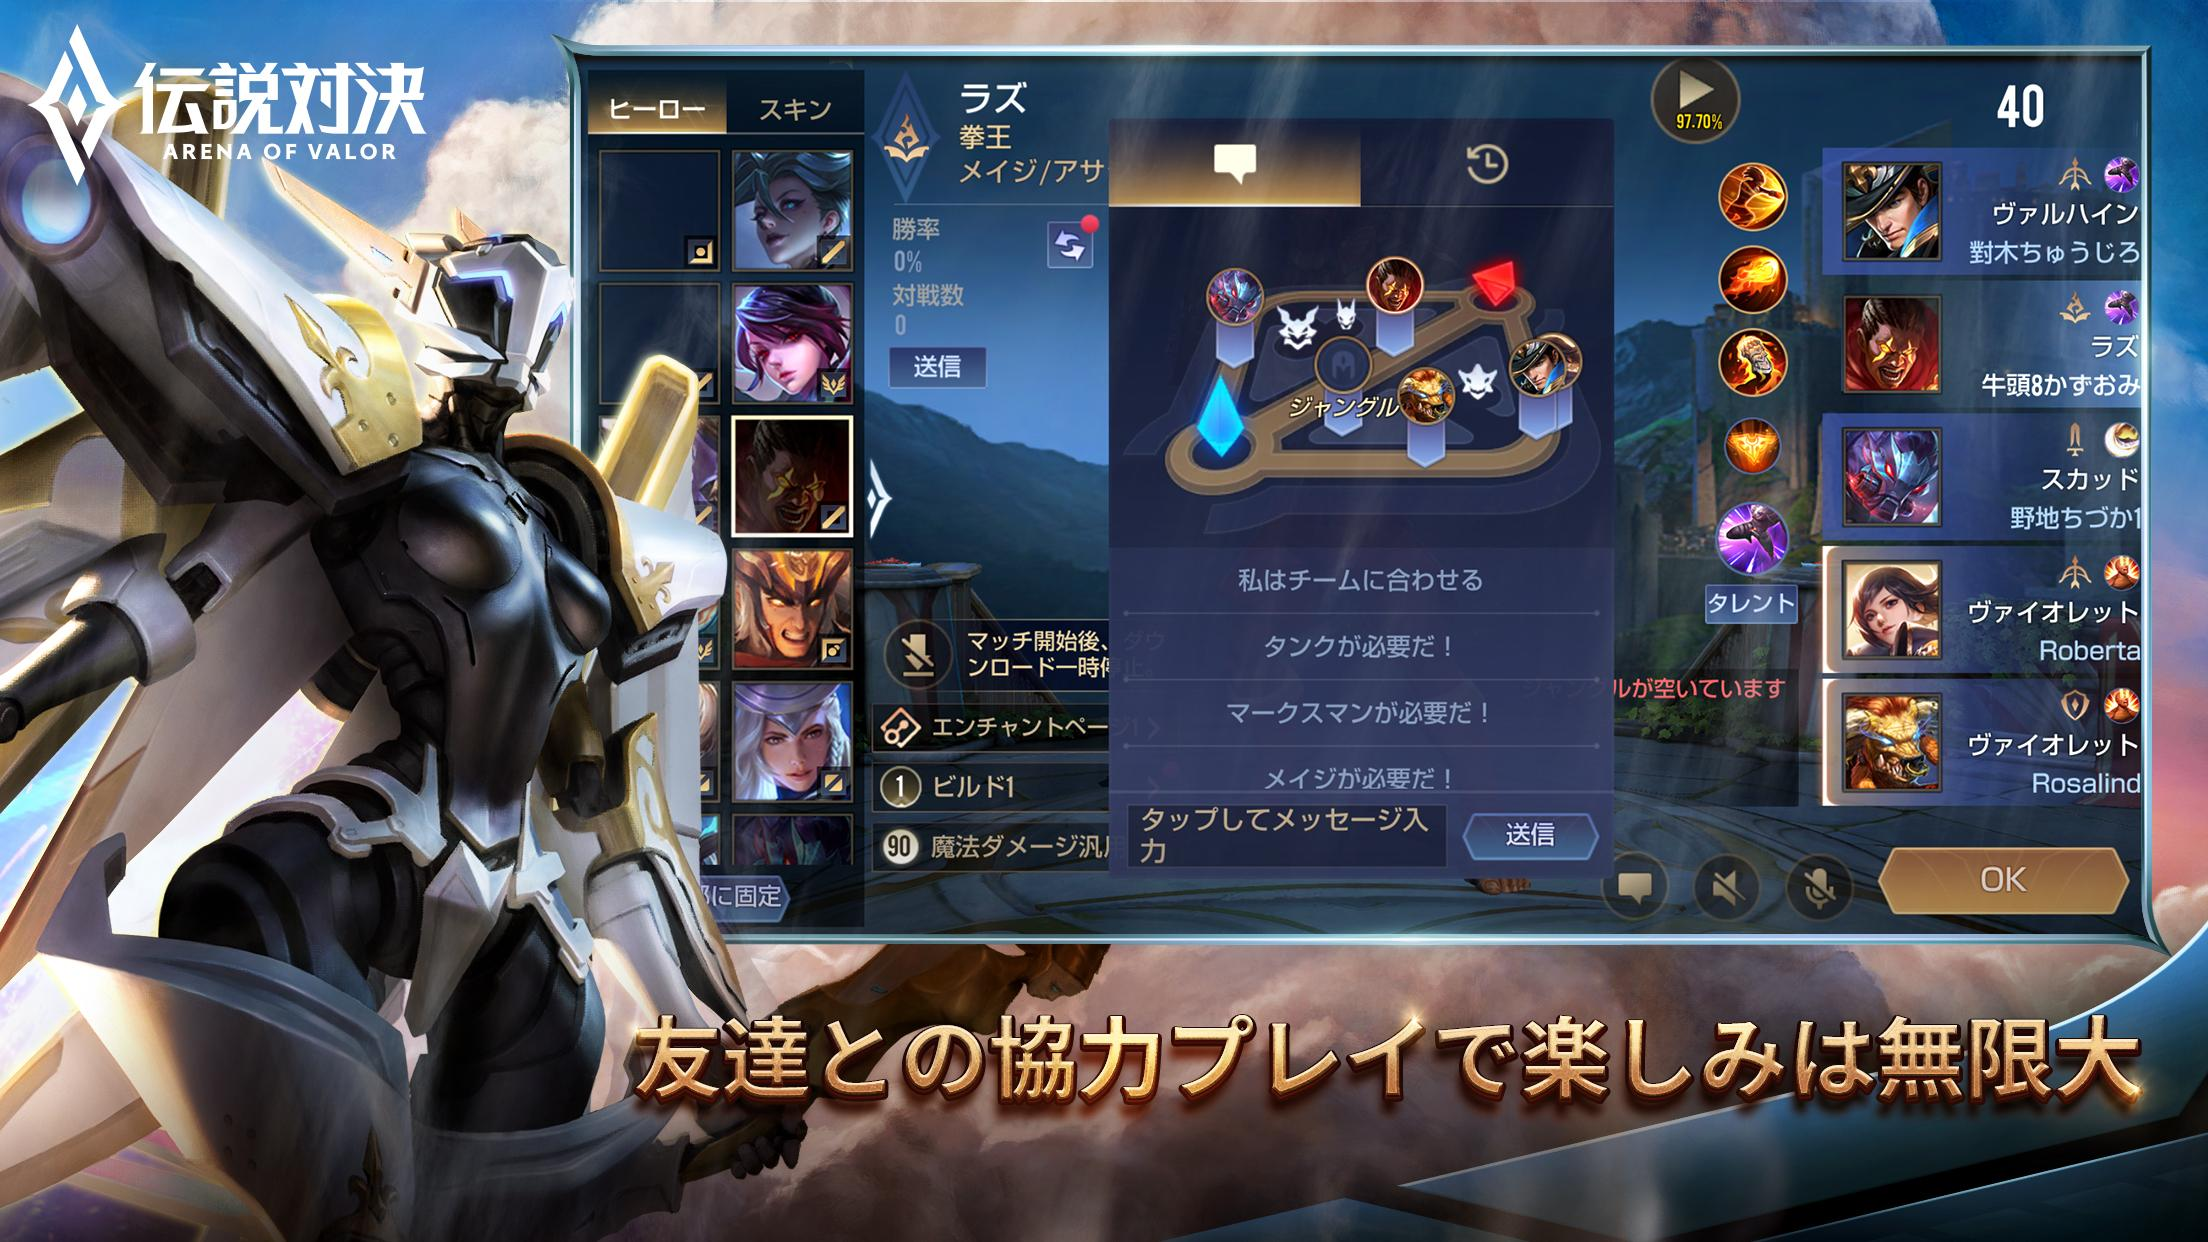 伝説対決 Arena of Valor 1.36.1.8 Screenshot 4